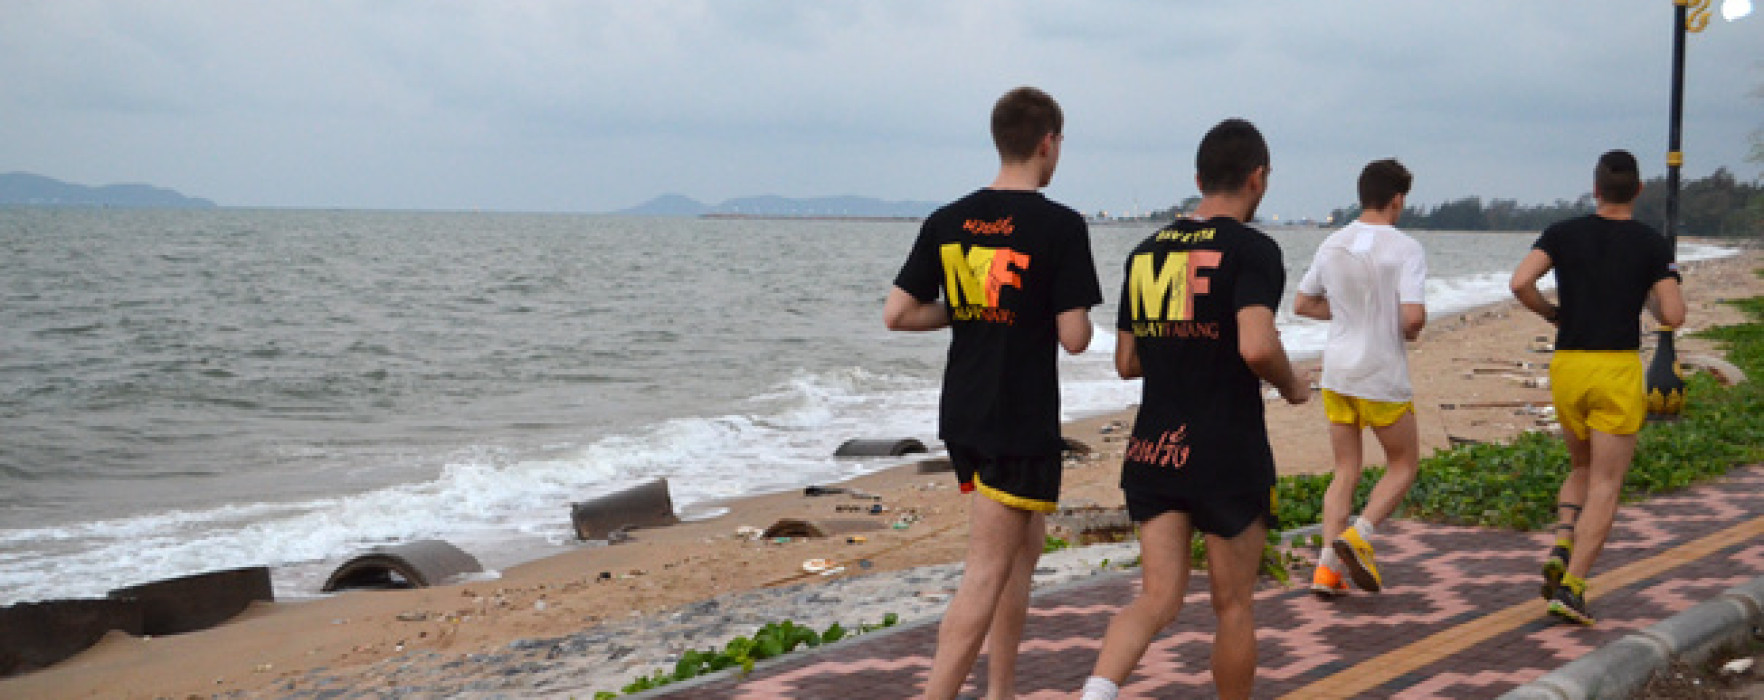 Coming of age as a foreigner in the culture of Muay Thai